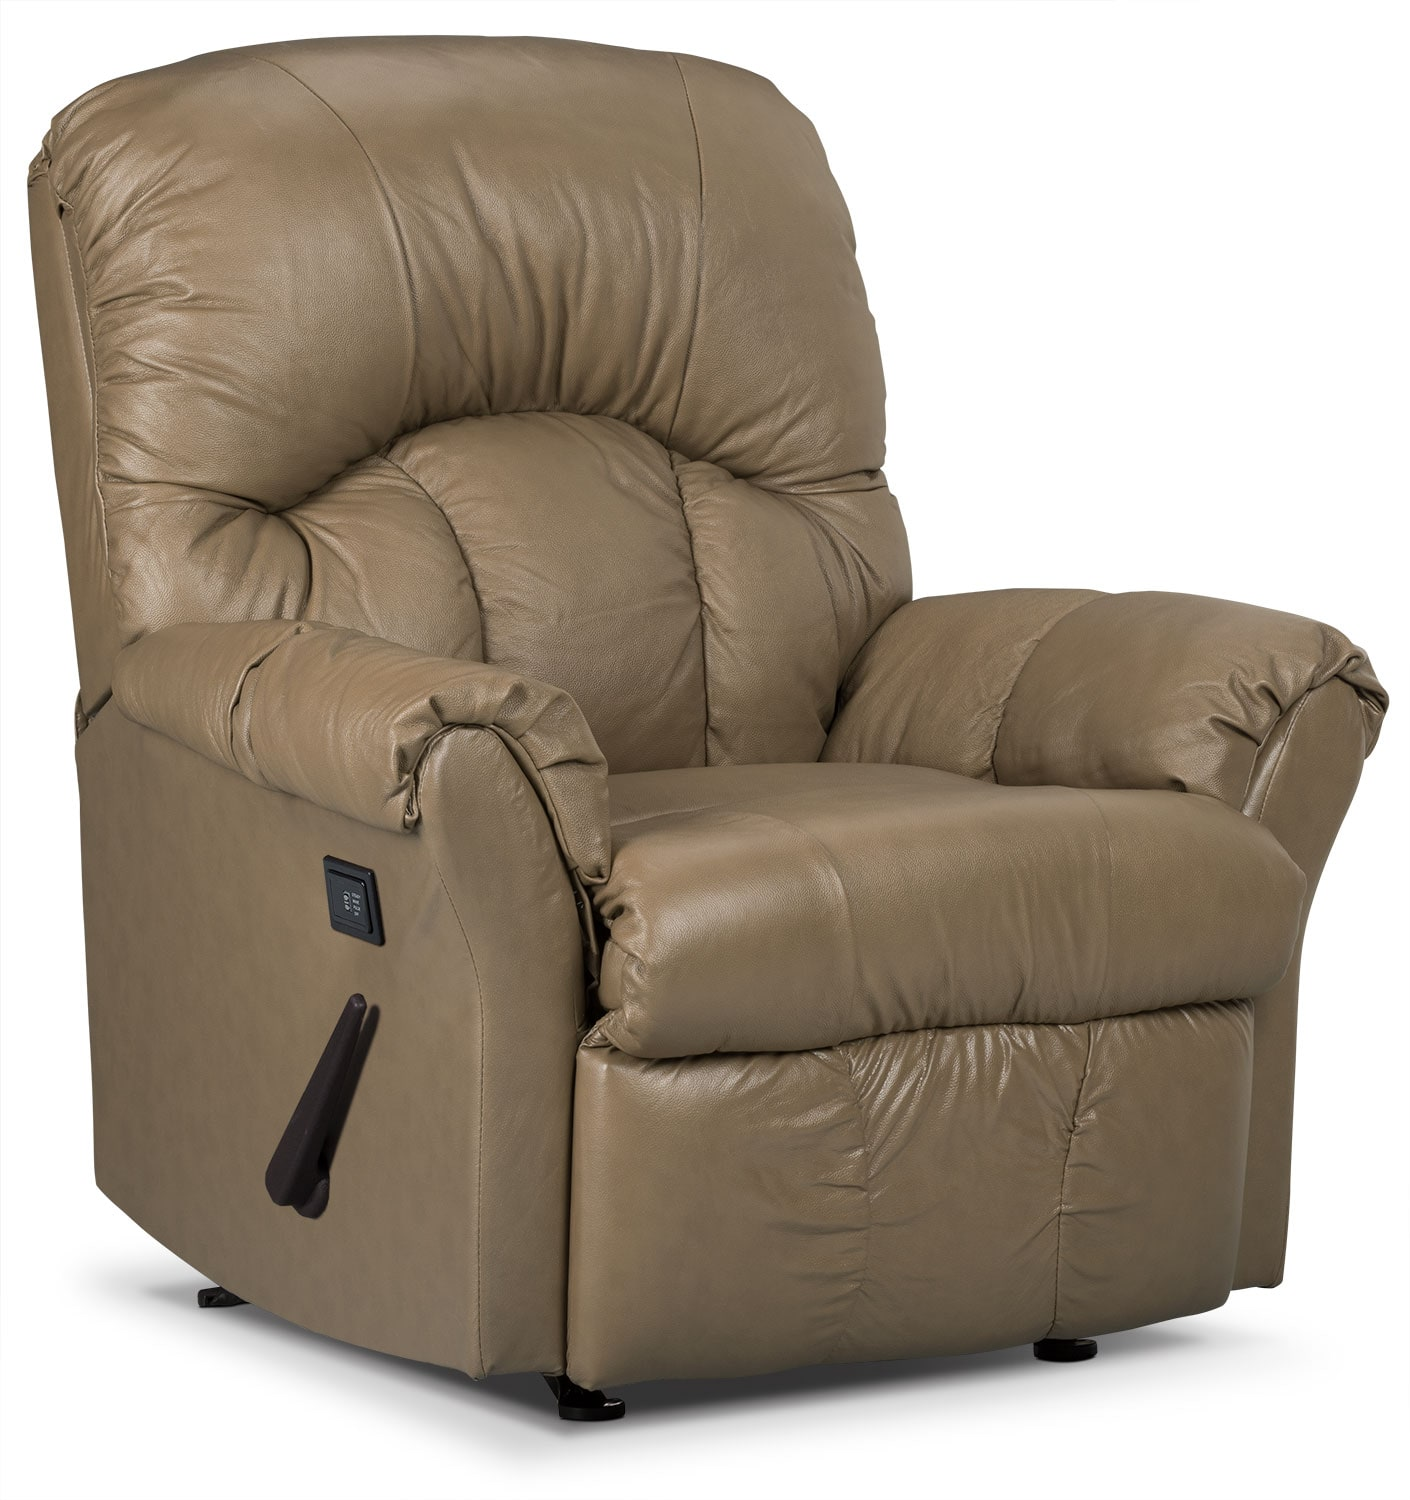 Living Room Furniture - Designed2B Recliner 6734 Genuine Leather Massage Chair - Buff